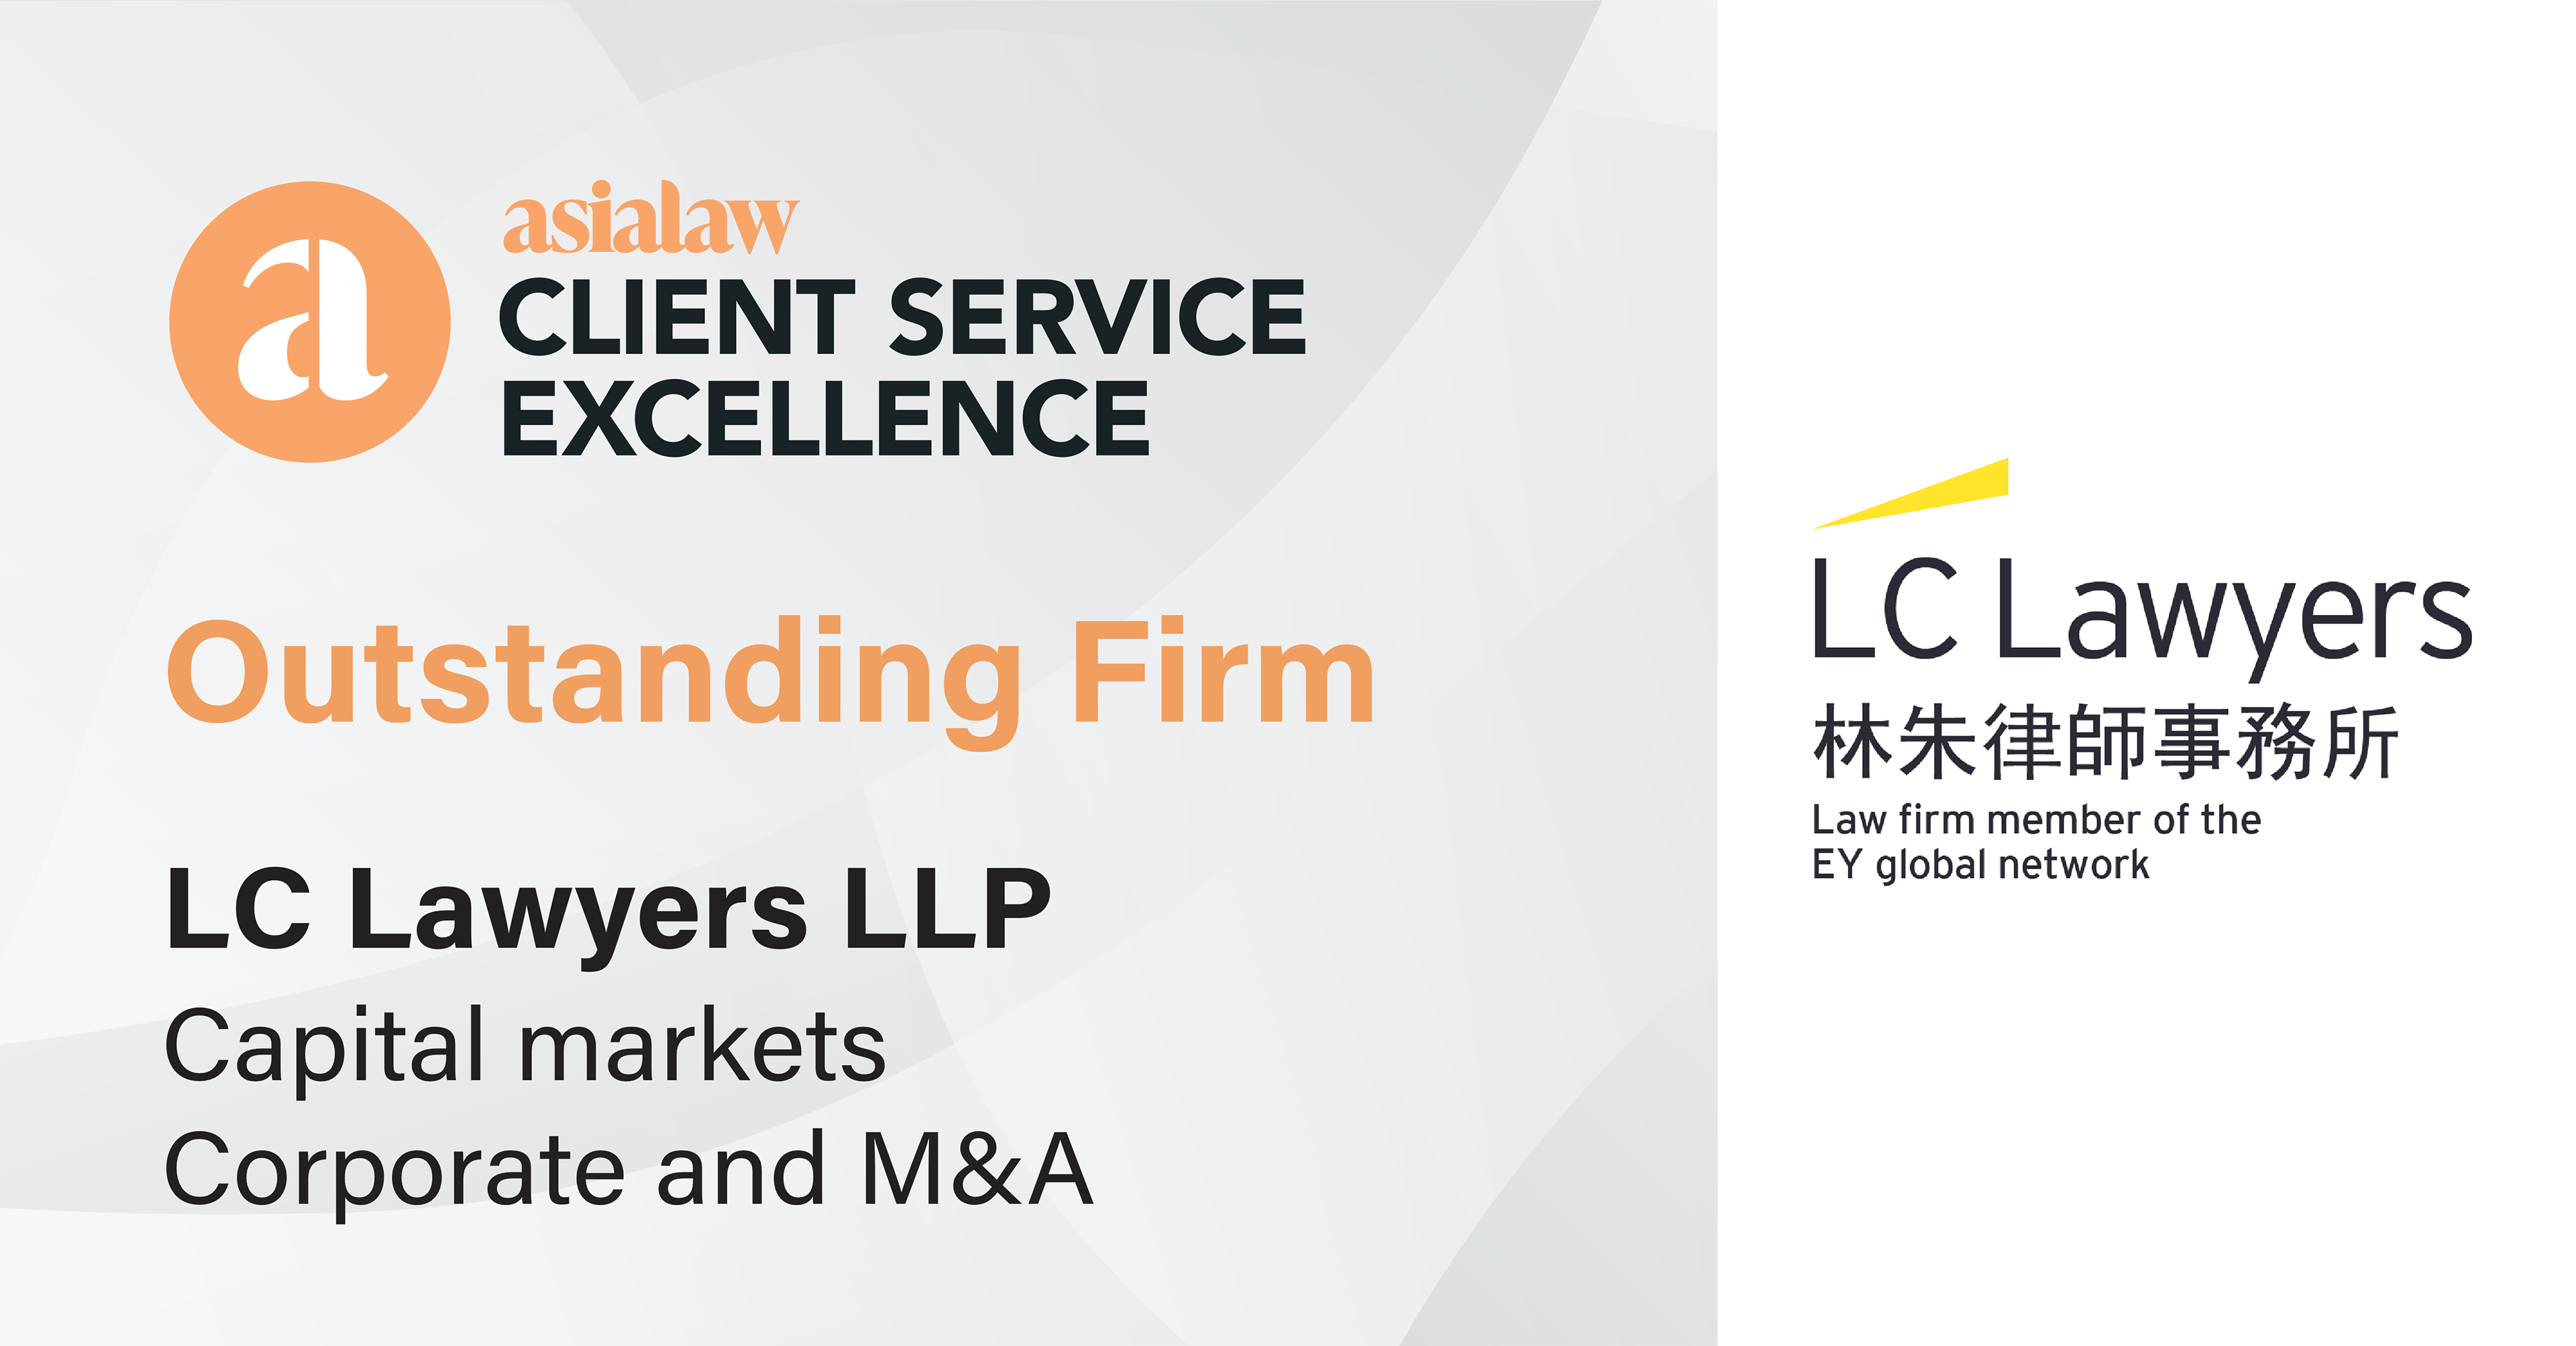 Outstanding Firm by asialaw Client Service Excellence 2021